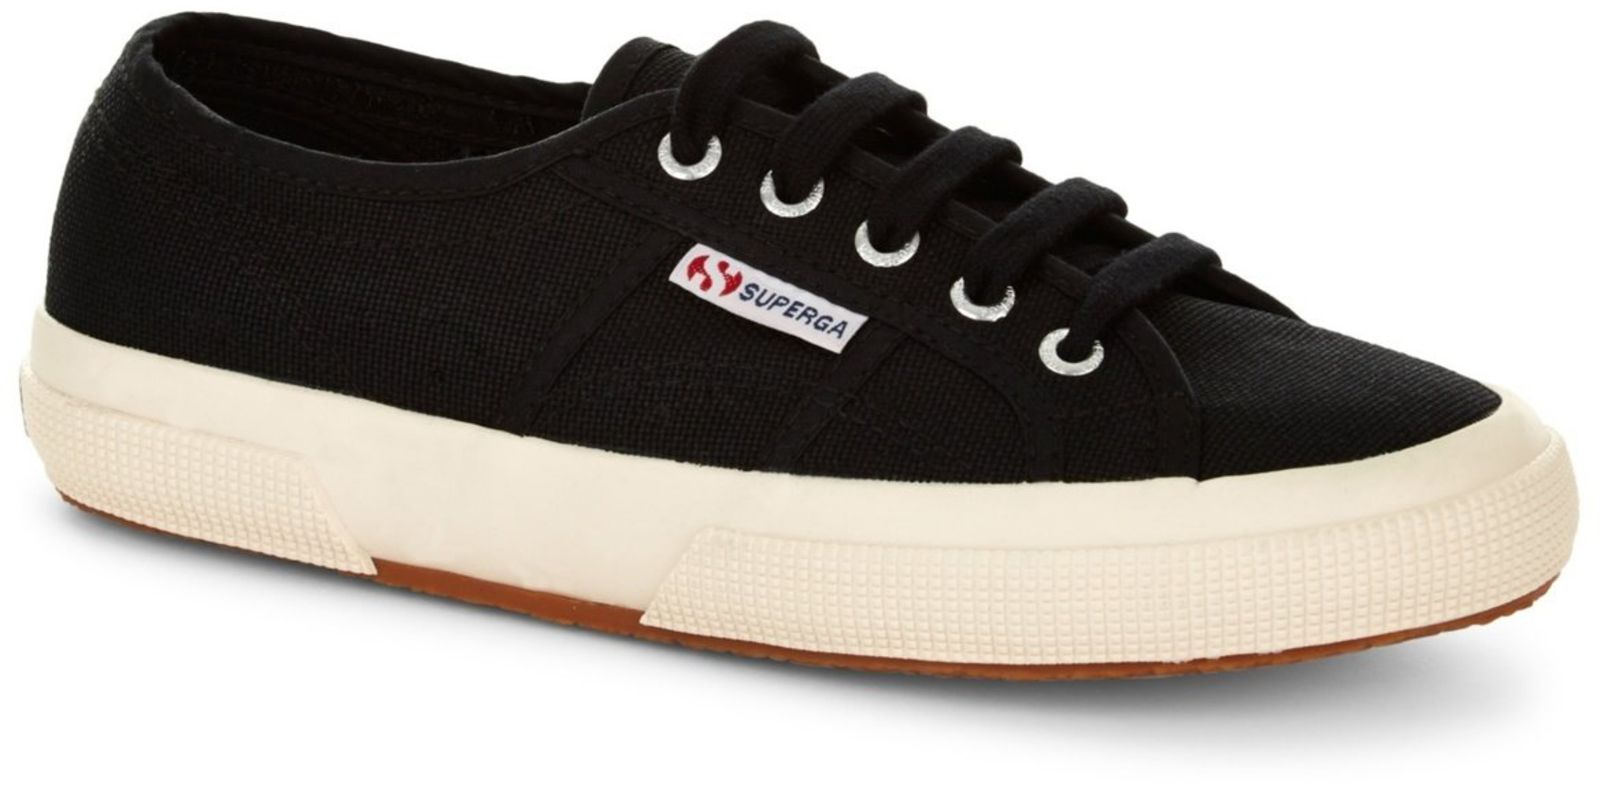 Superga 2750 Cotu Womens Trainers Black Black - UK 7.5 (EU 41.5)